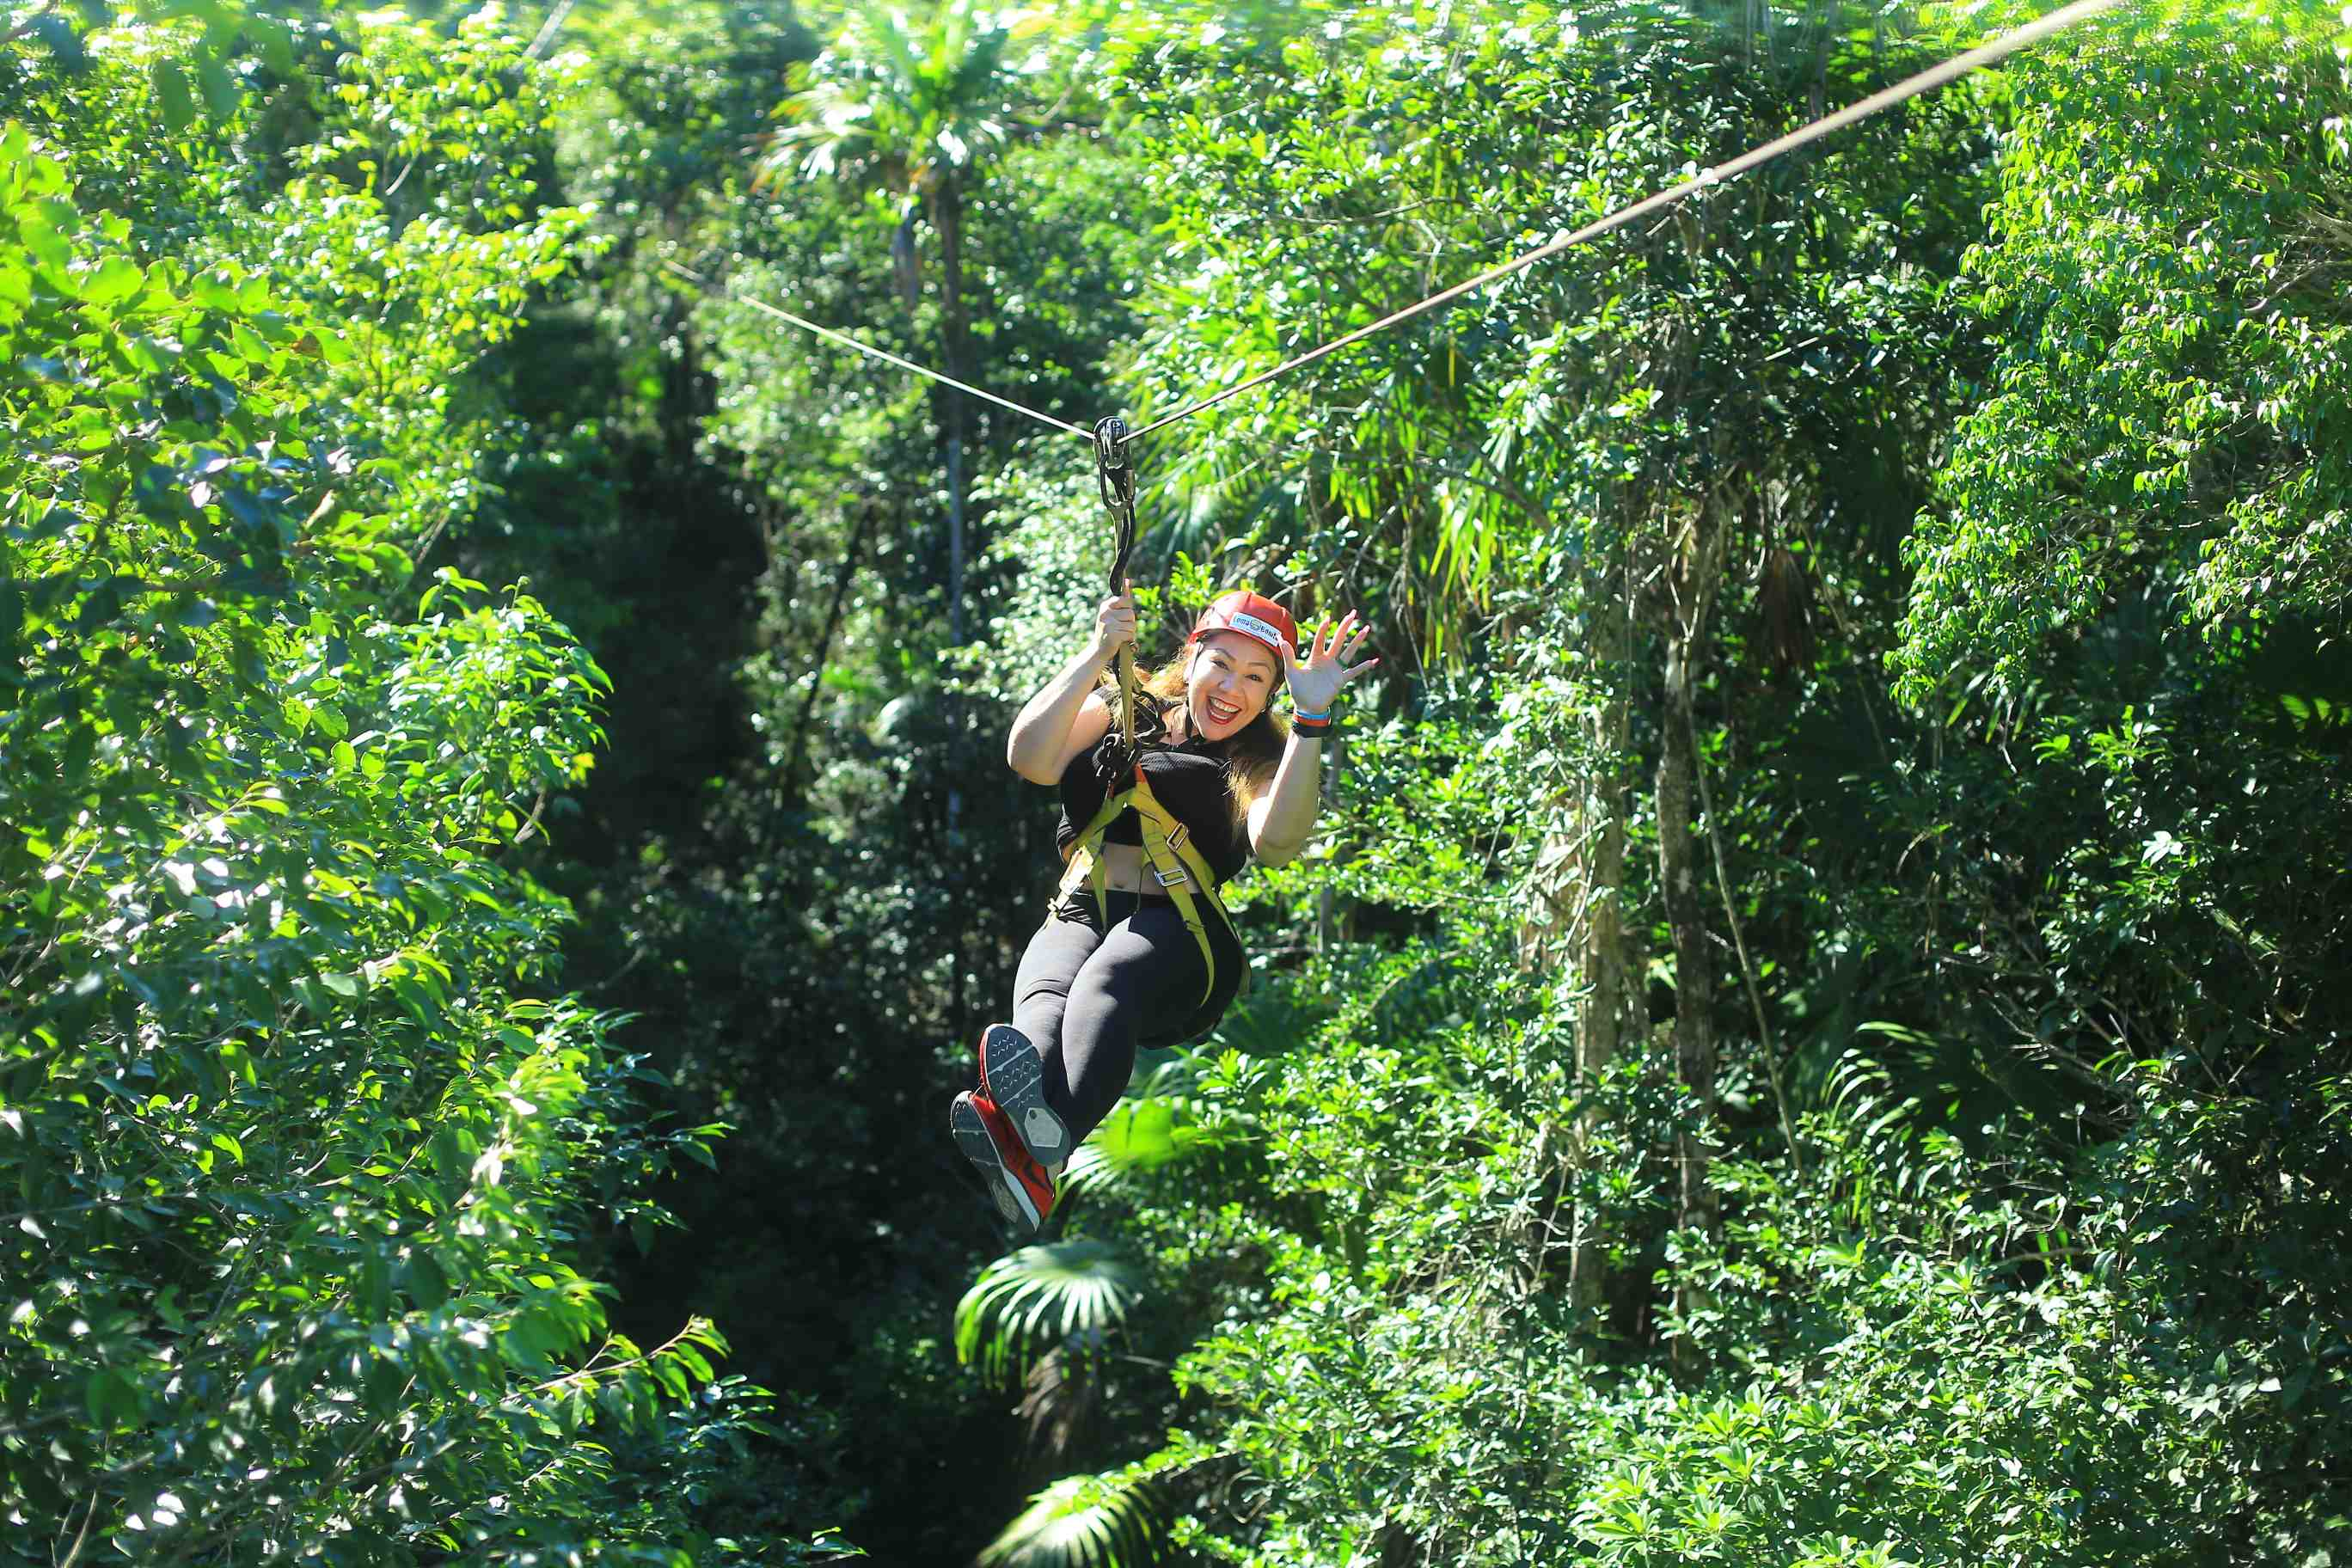 Horses, Ziplines And Cenote Tour - Last Minute Tours in Cancún and Riviera Maya